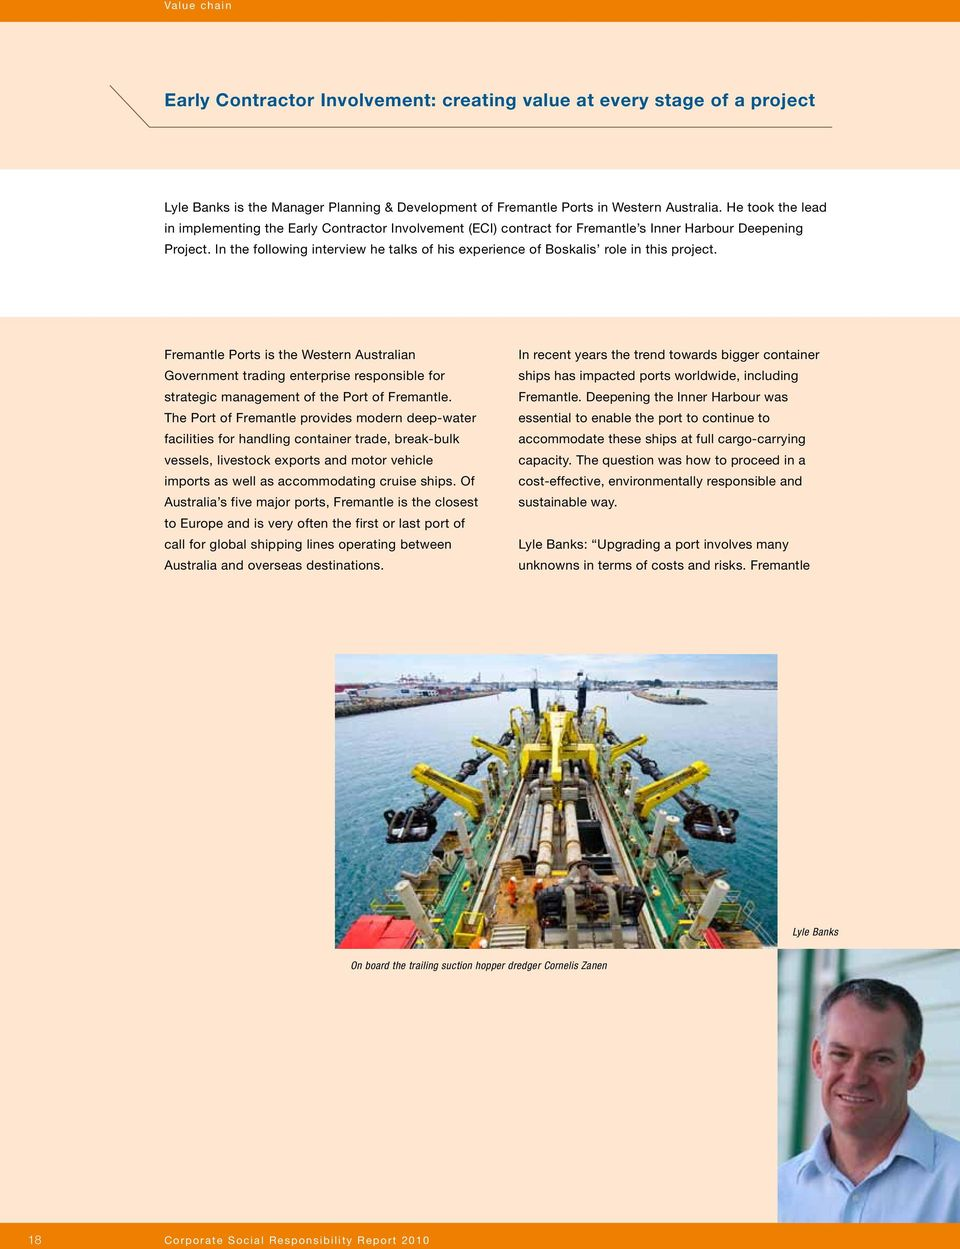 In the following interview he talks of his experience of Boskalis role in this project.